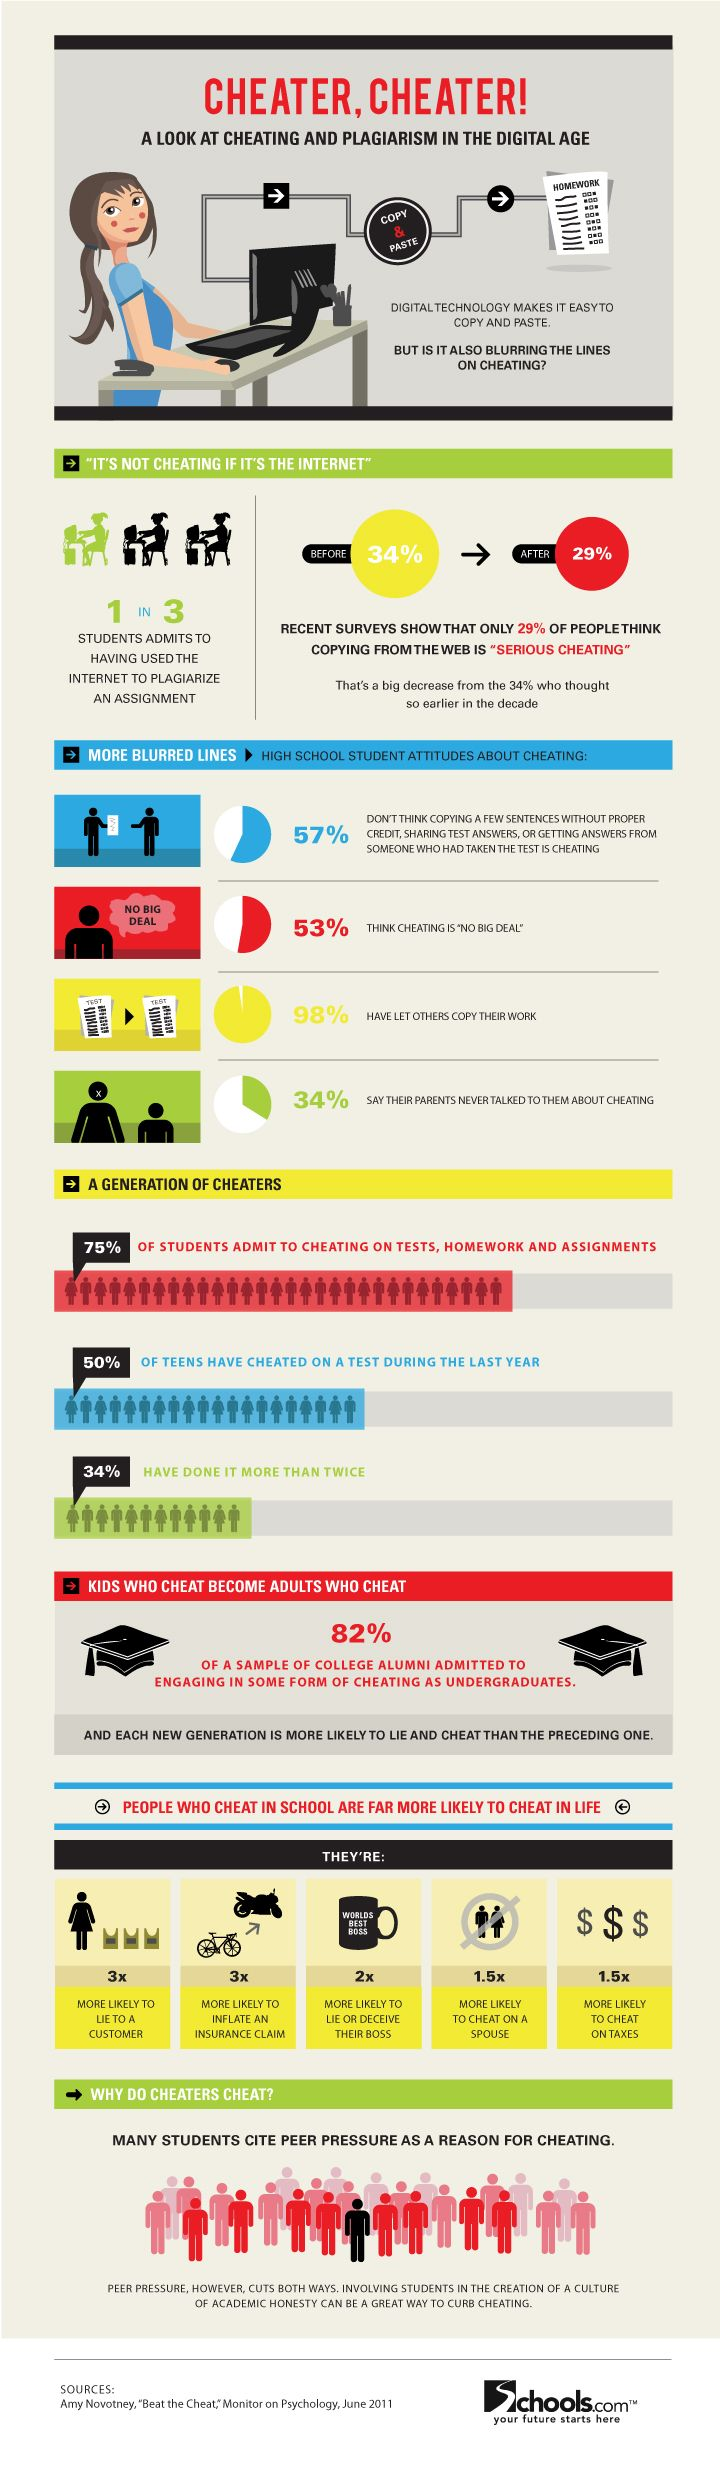 Infographic - Cheating in school: How the digital age affects cheating and plagiarism